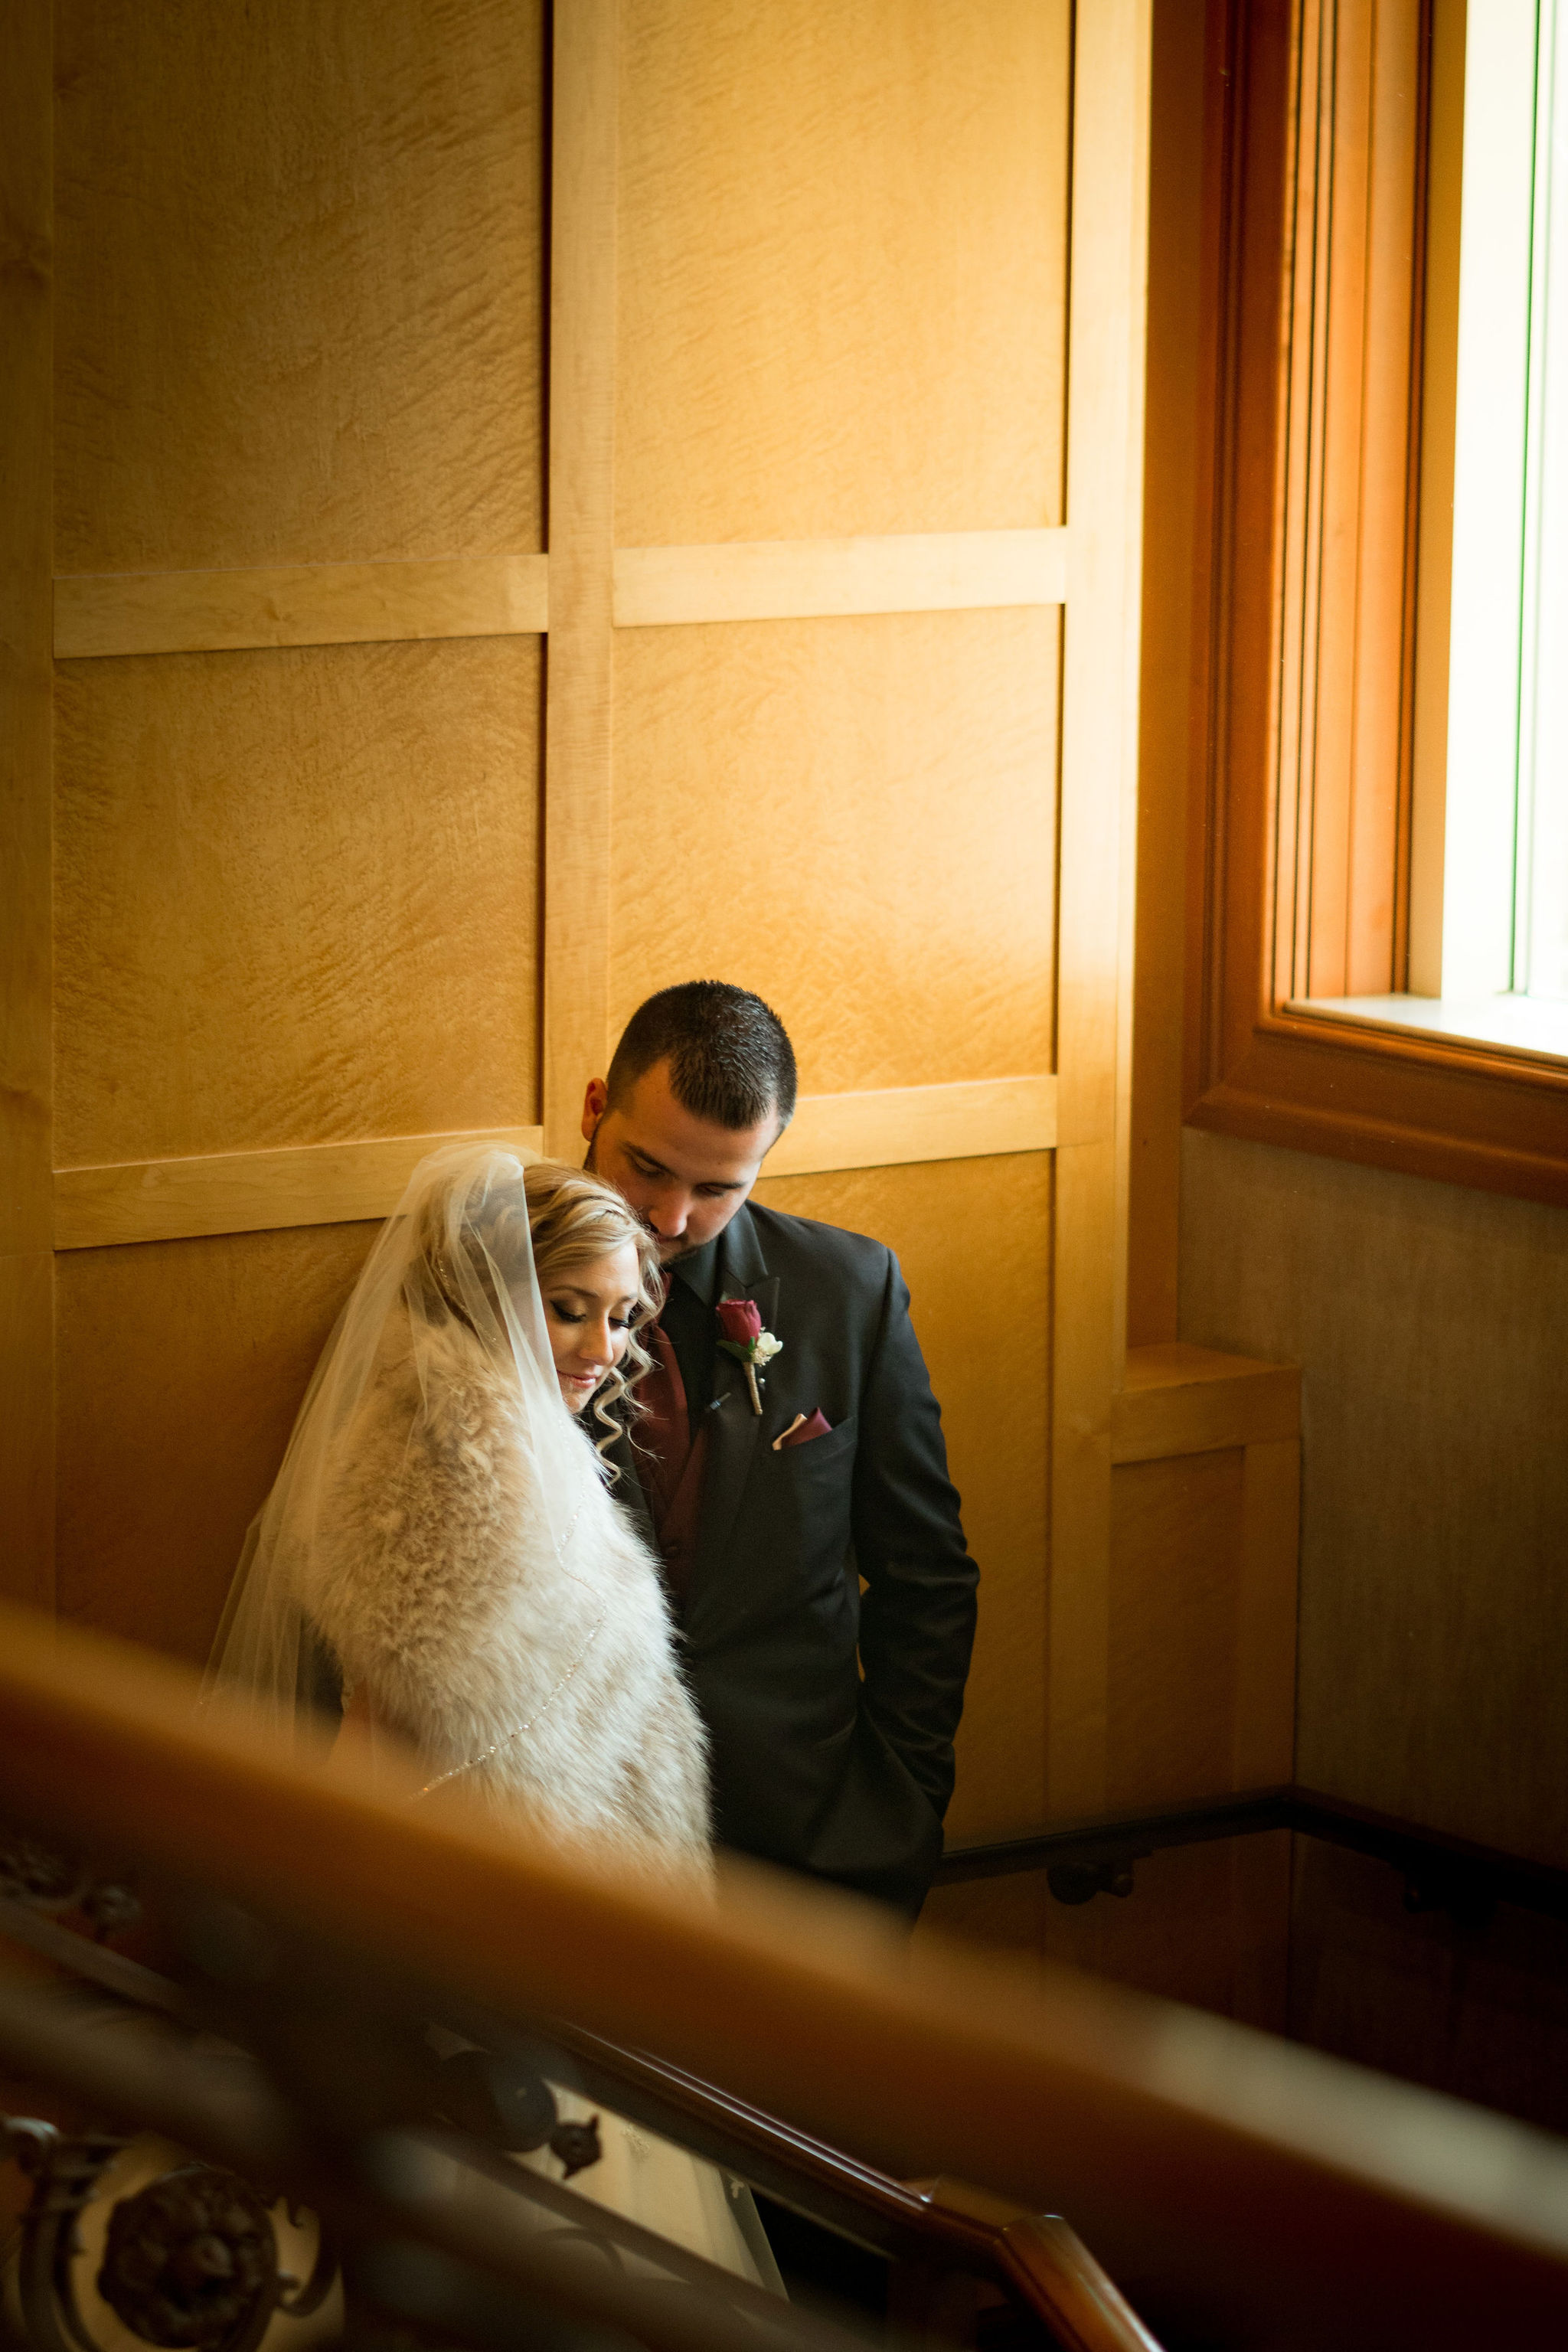 Artistic wedding portrait against wooden wall at Sand Creek Country Club.